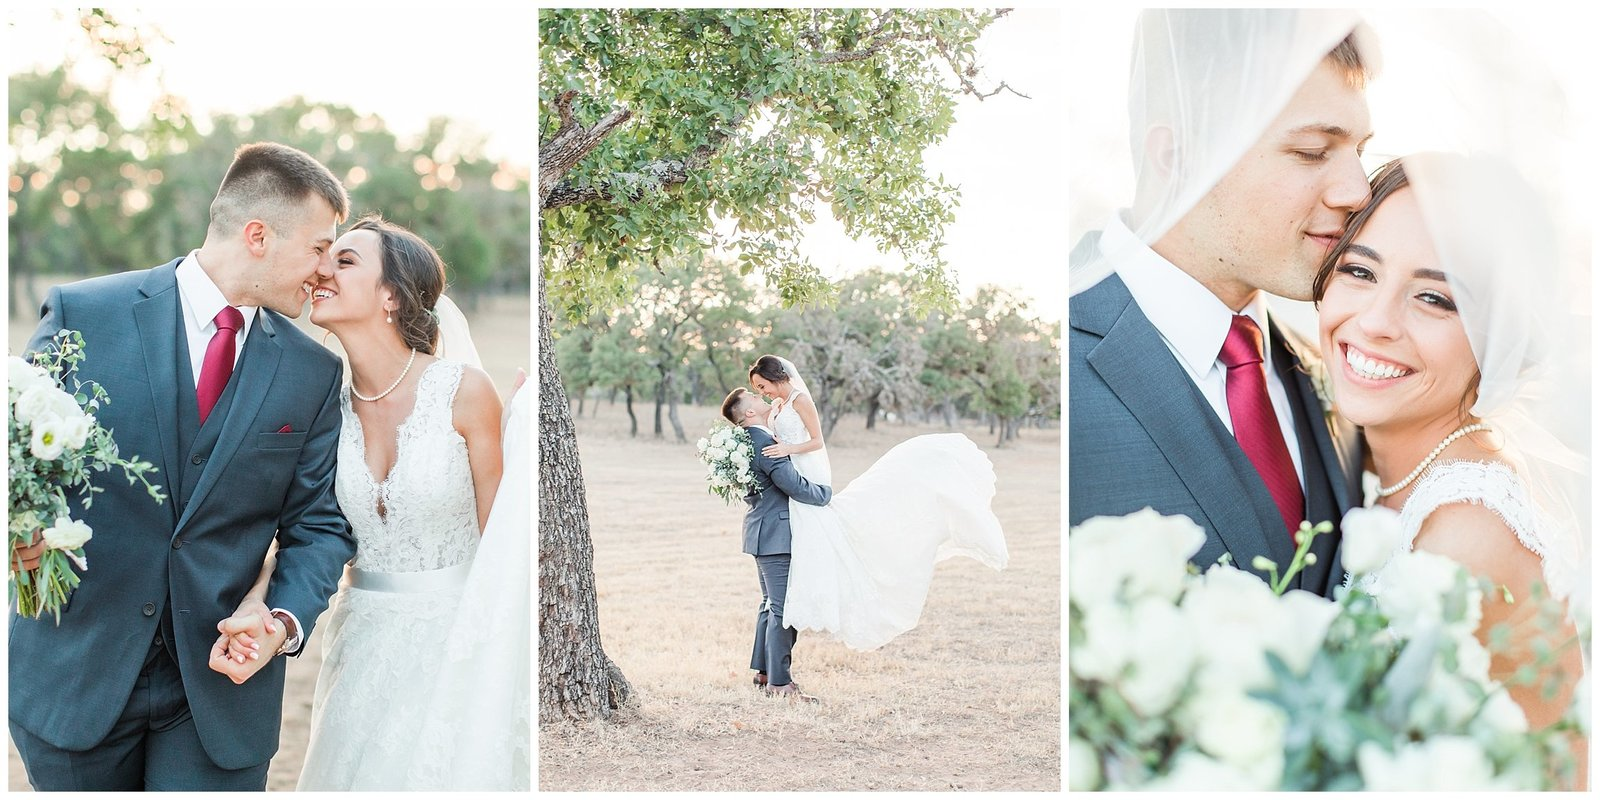 fredericksburg texas wedding photographer The Lodge at Country Inn Cottages wedding photos_0020